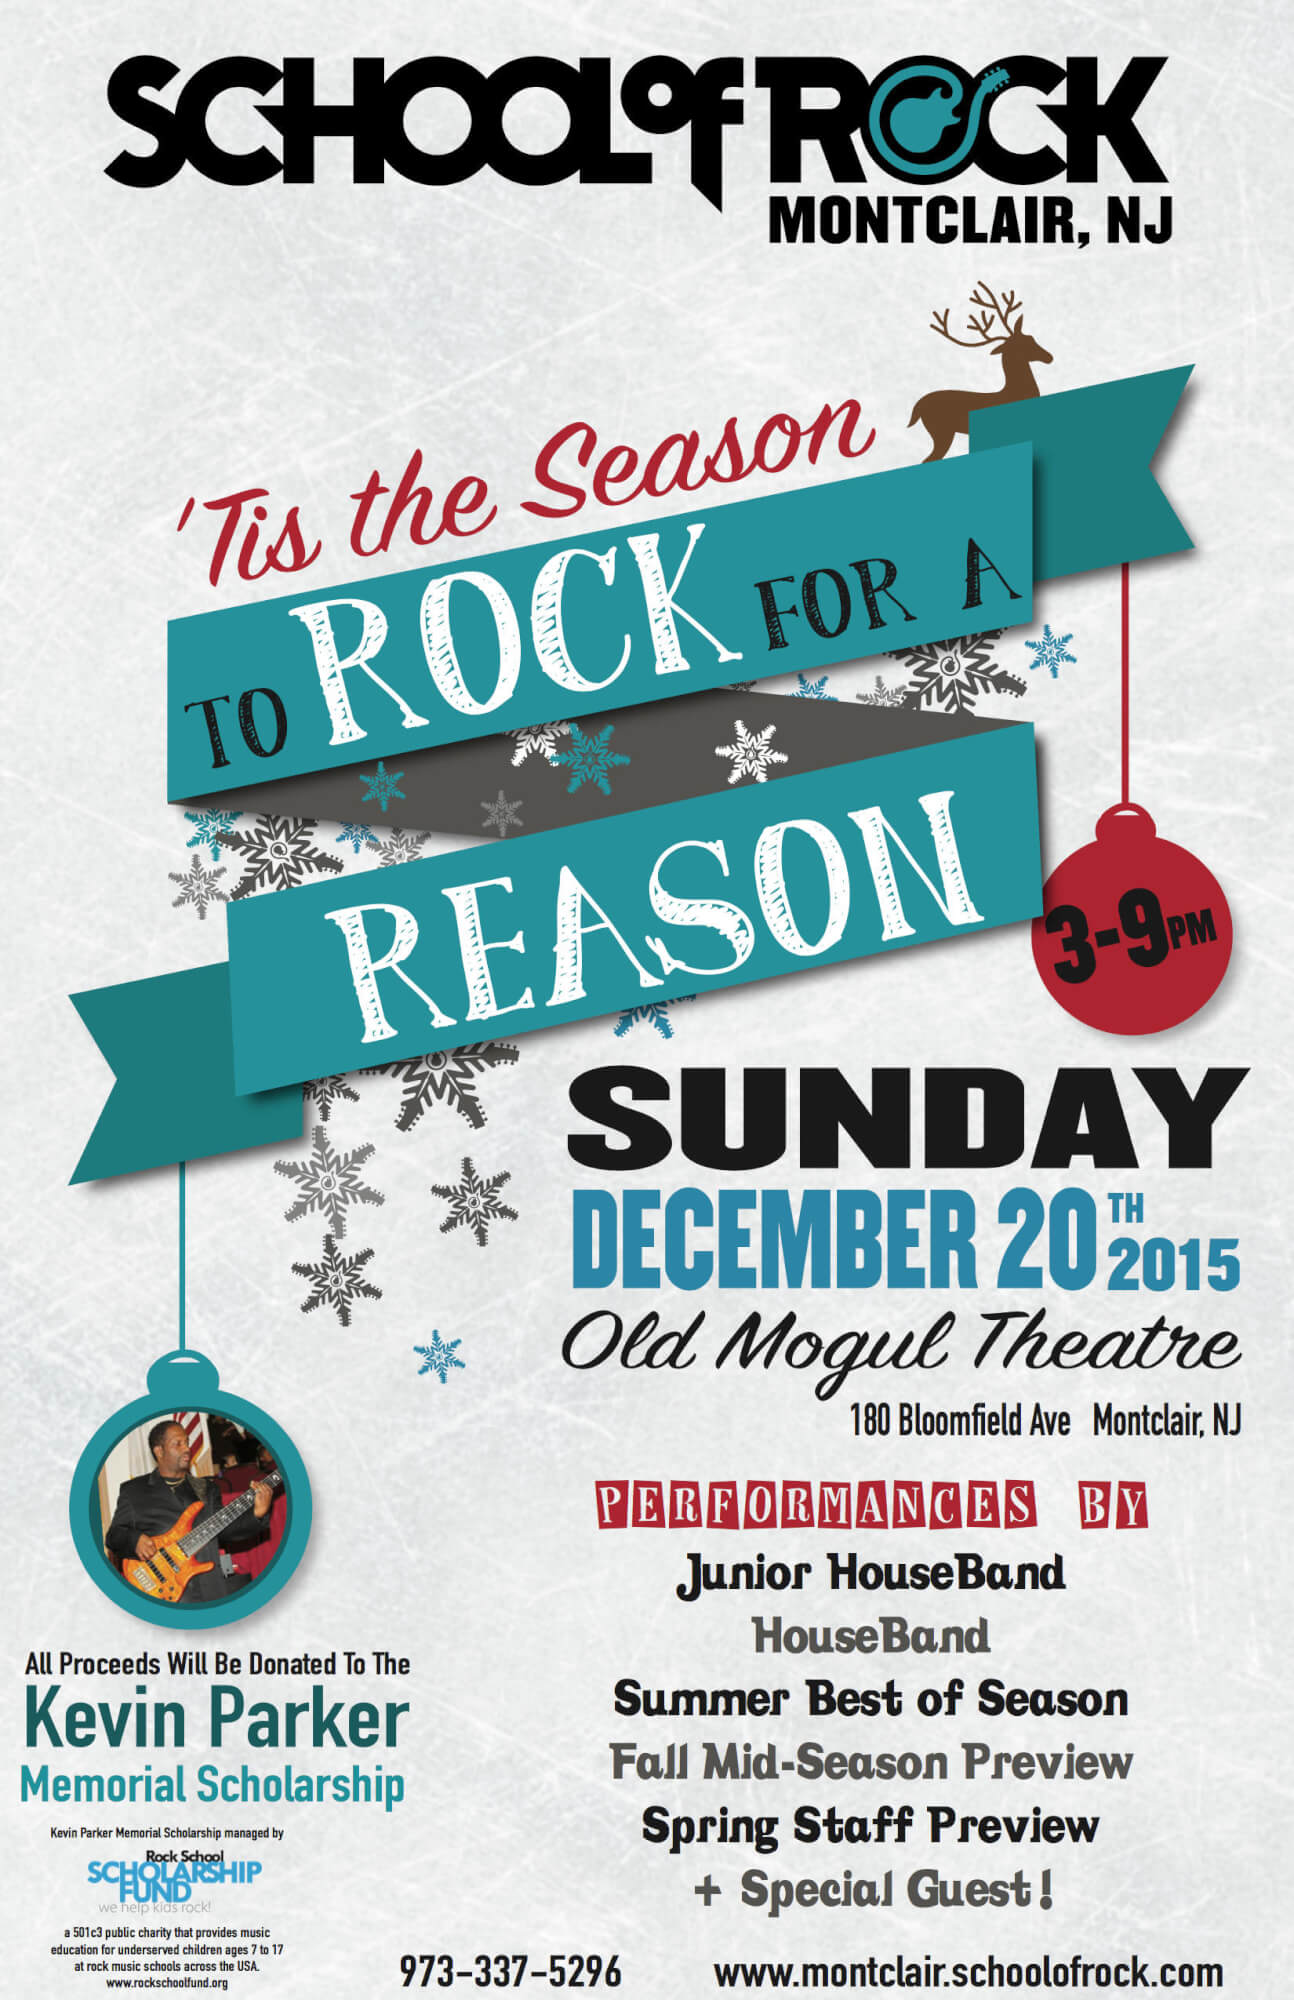 Tis the season to ROCK for a Reason Sunday, December 20th 3-9pm at Old Mogul Theatre